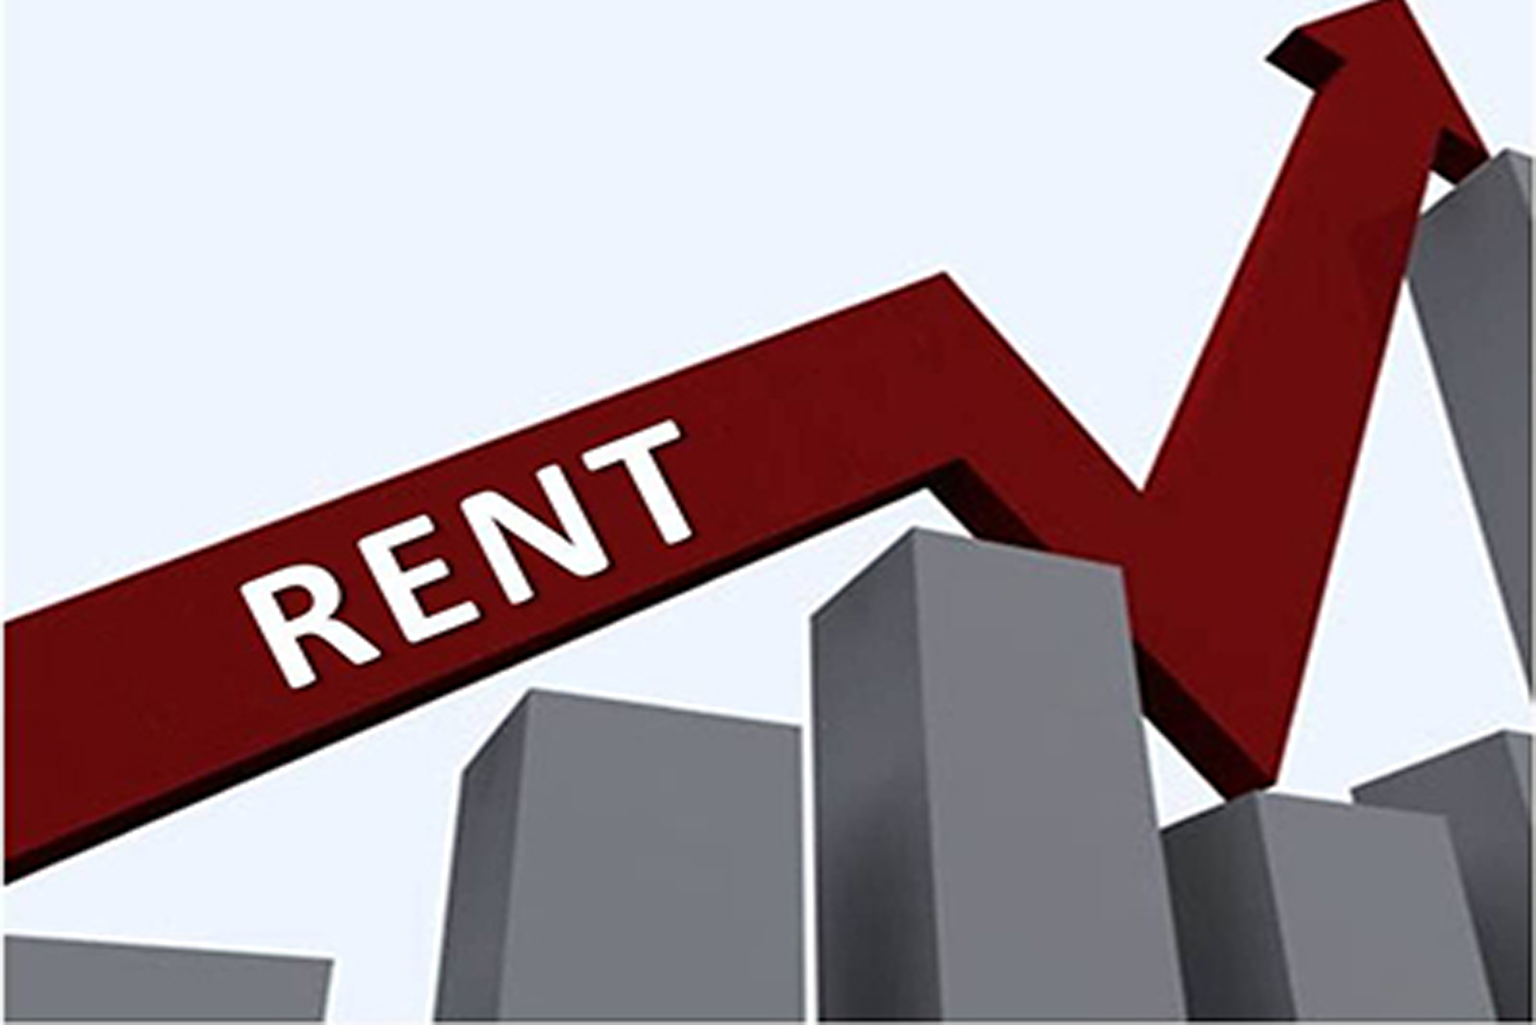 New figure revealed for rent increases as every region shows a rise